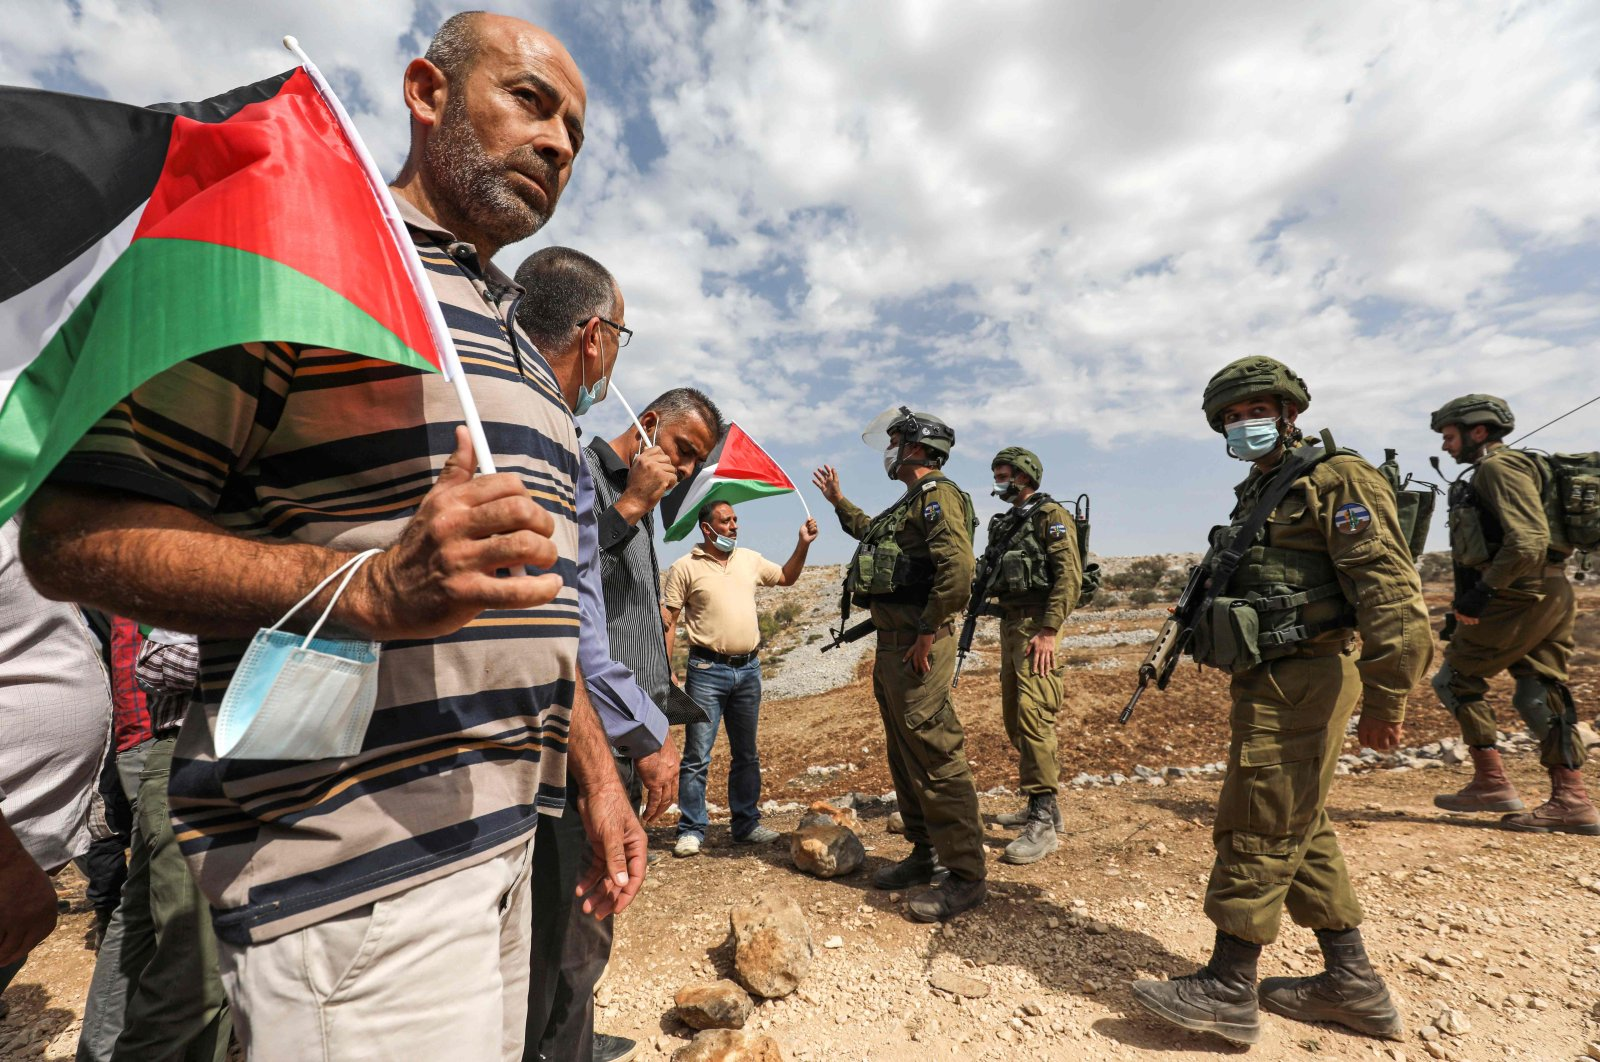 Palestinian protesters with flags, some mask-clad due to the COVID-19 pandemic, confront Israeli soldiers during a demonstration against illegal Jewish settlements in the town of Asira Shamaliya in the Israeli-occupied West Bank, near Nablus, Palestine, Oct. 9, 2020. (AFP Photo)